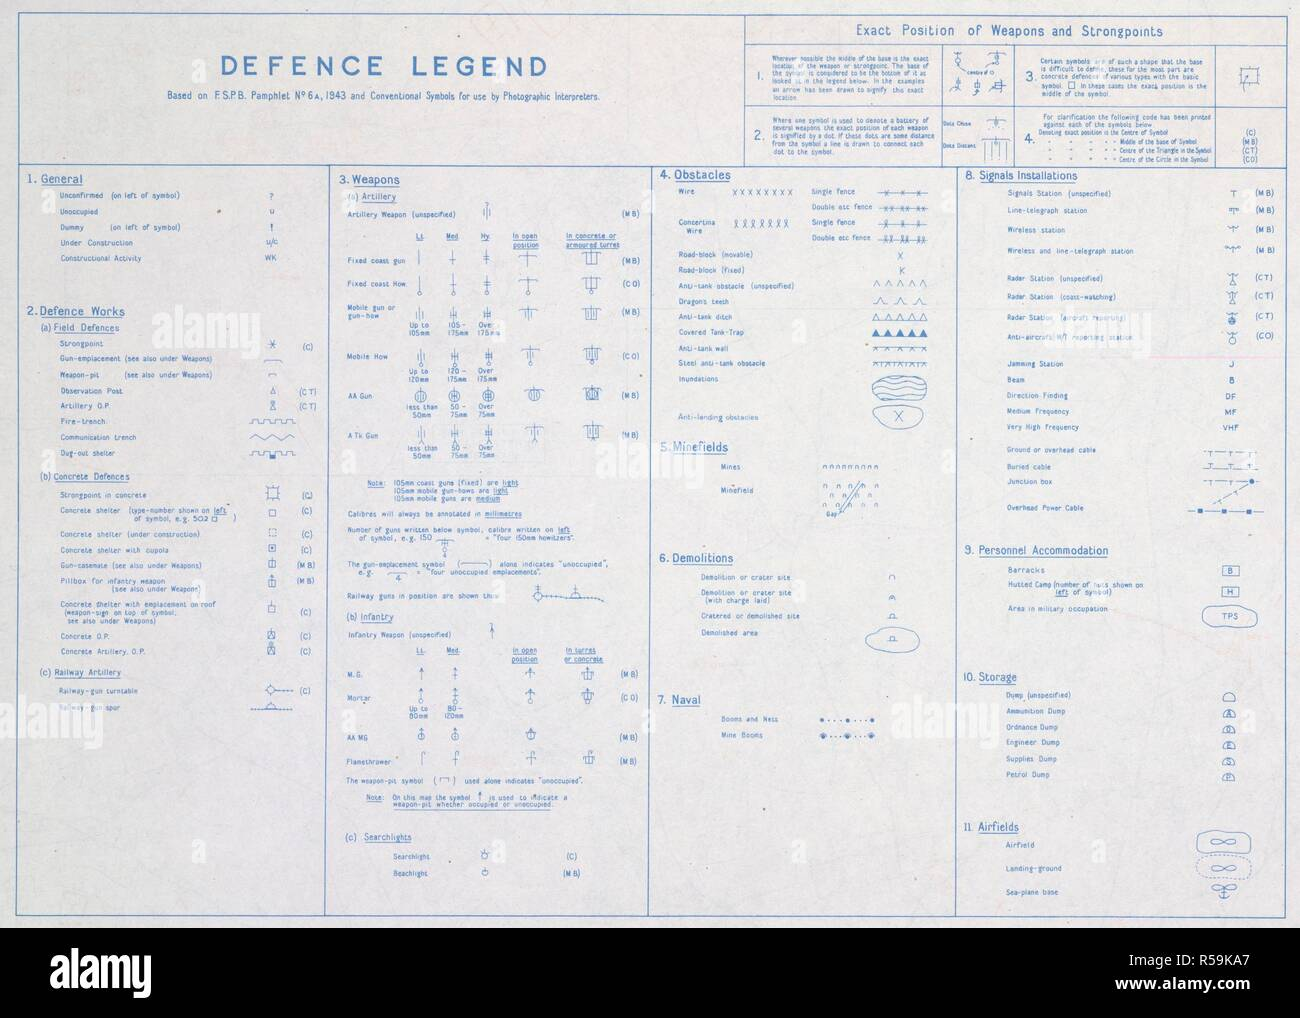 Defence Legend For A Map Of The Second World War France 1 25 000